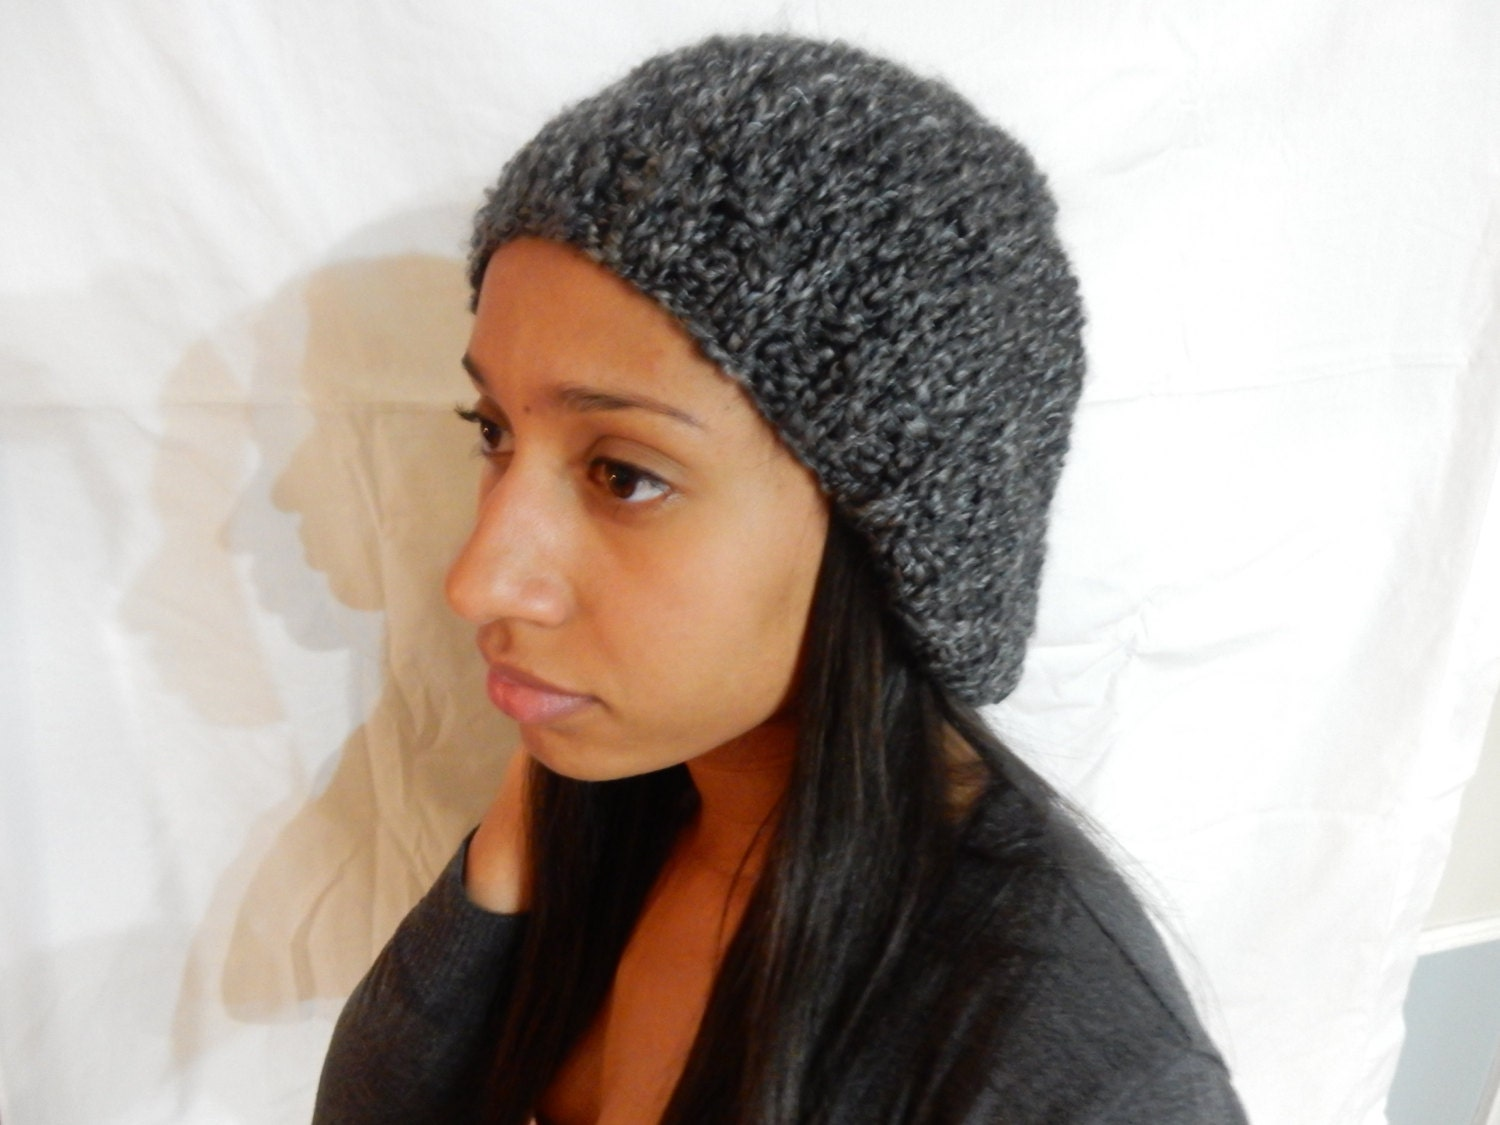 135b48d215ab9 Knitted Slouchy Beanie  GREY  Winter Hat Women Accessories Acrilyc All  Occasions